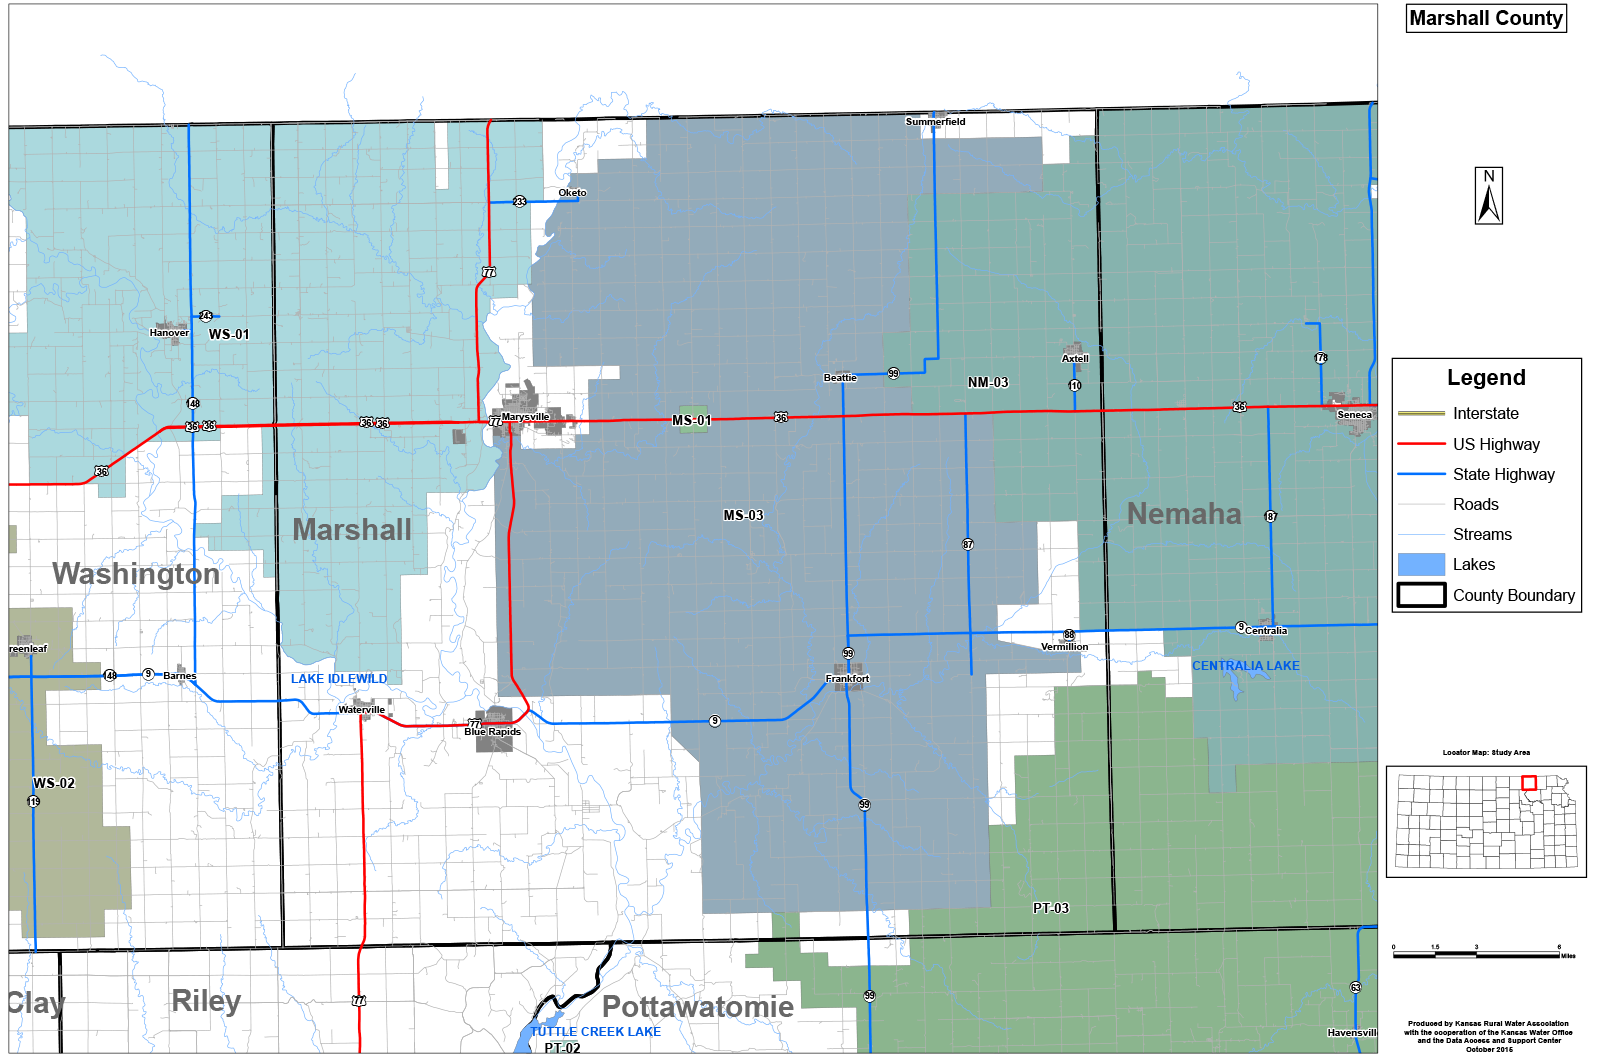 Kansas marshall county axtell - Search Contact Information In Our Directory Of City Rwd Contacts More About These Maps And Accuracy Back To Main Maps Page